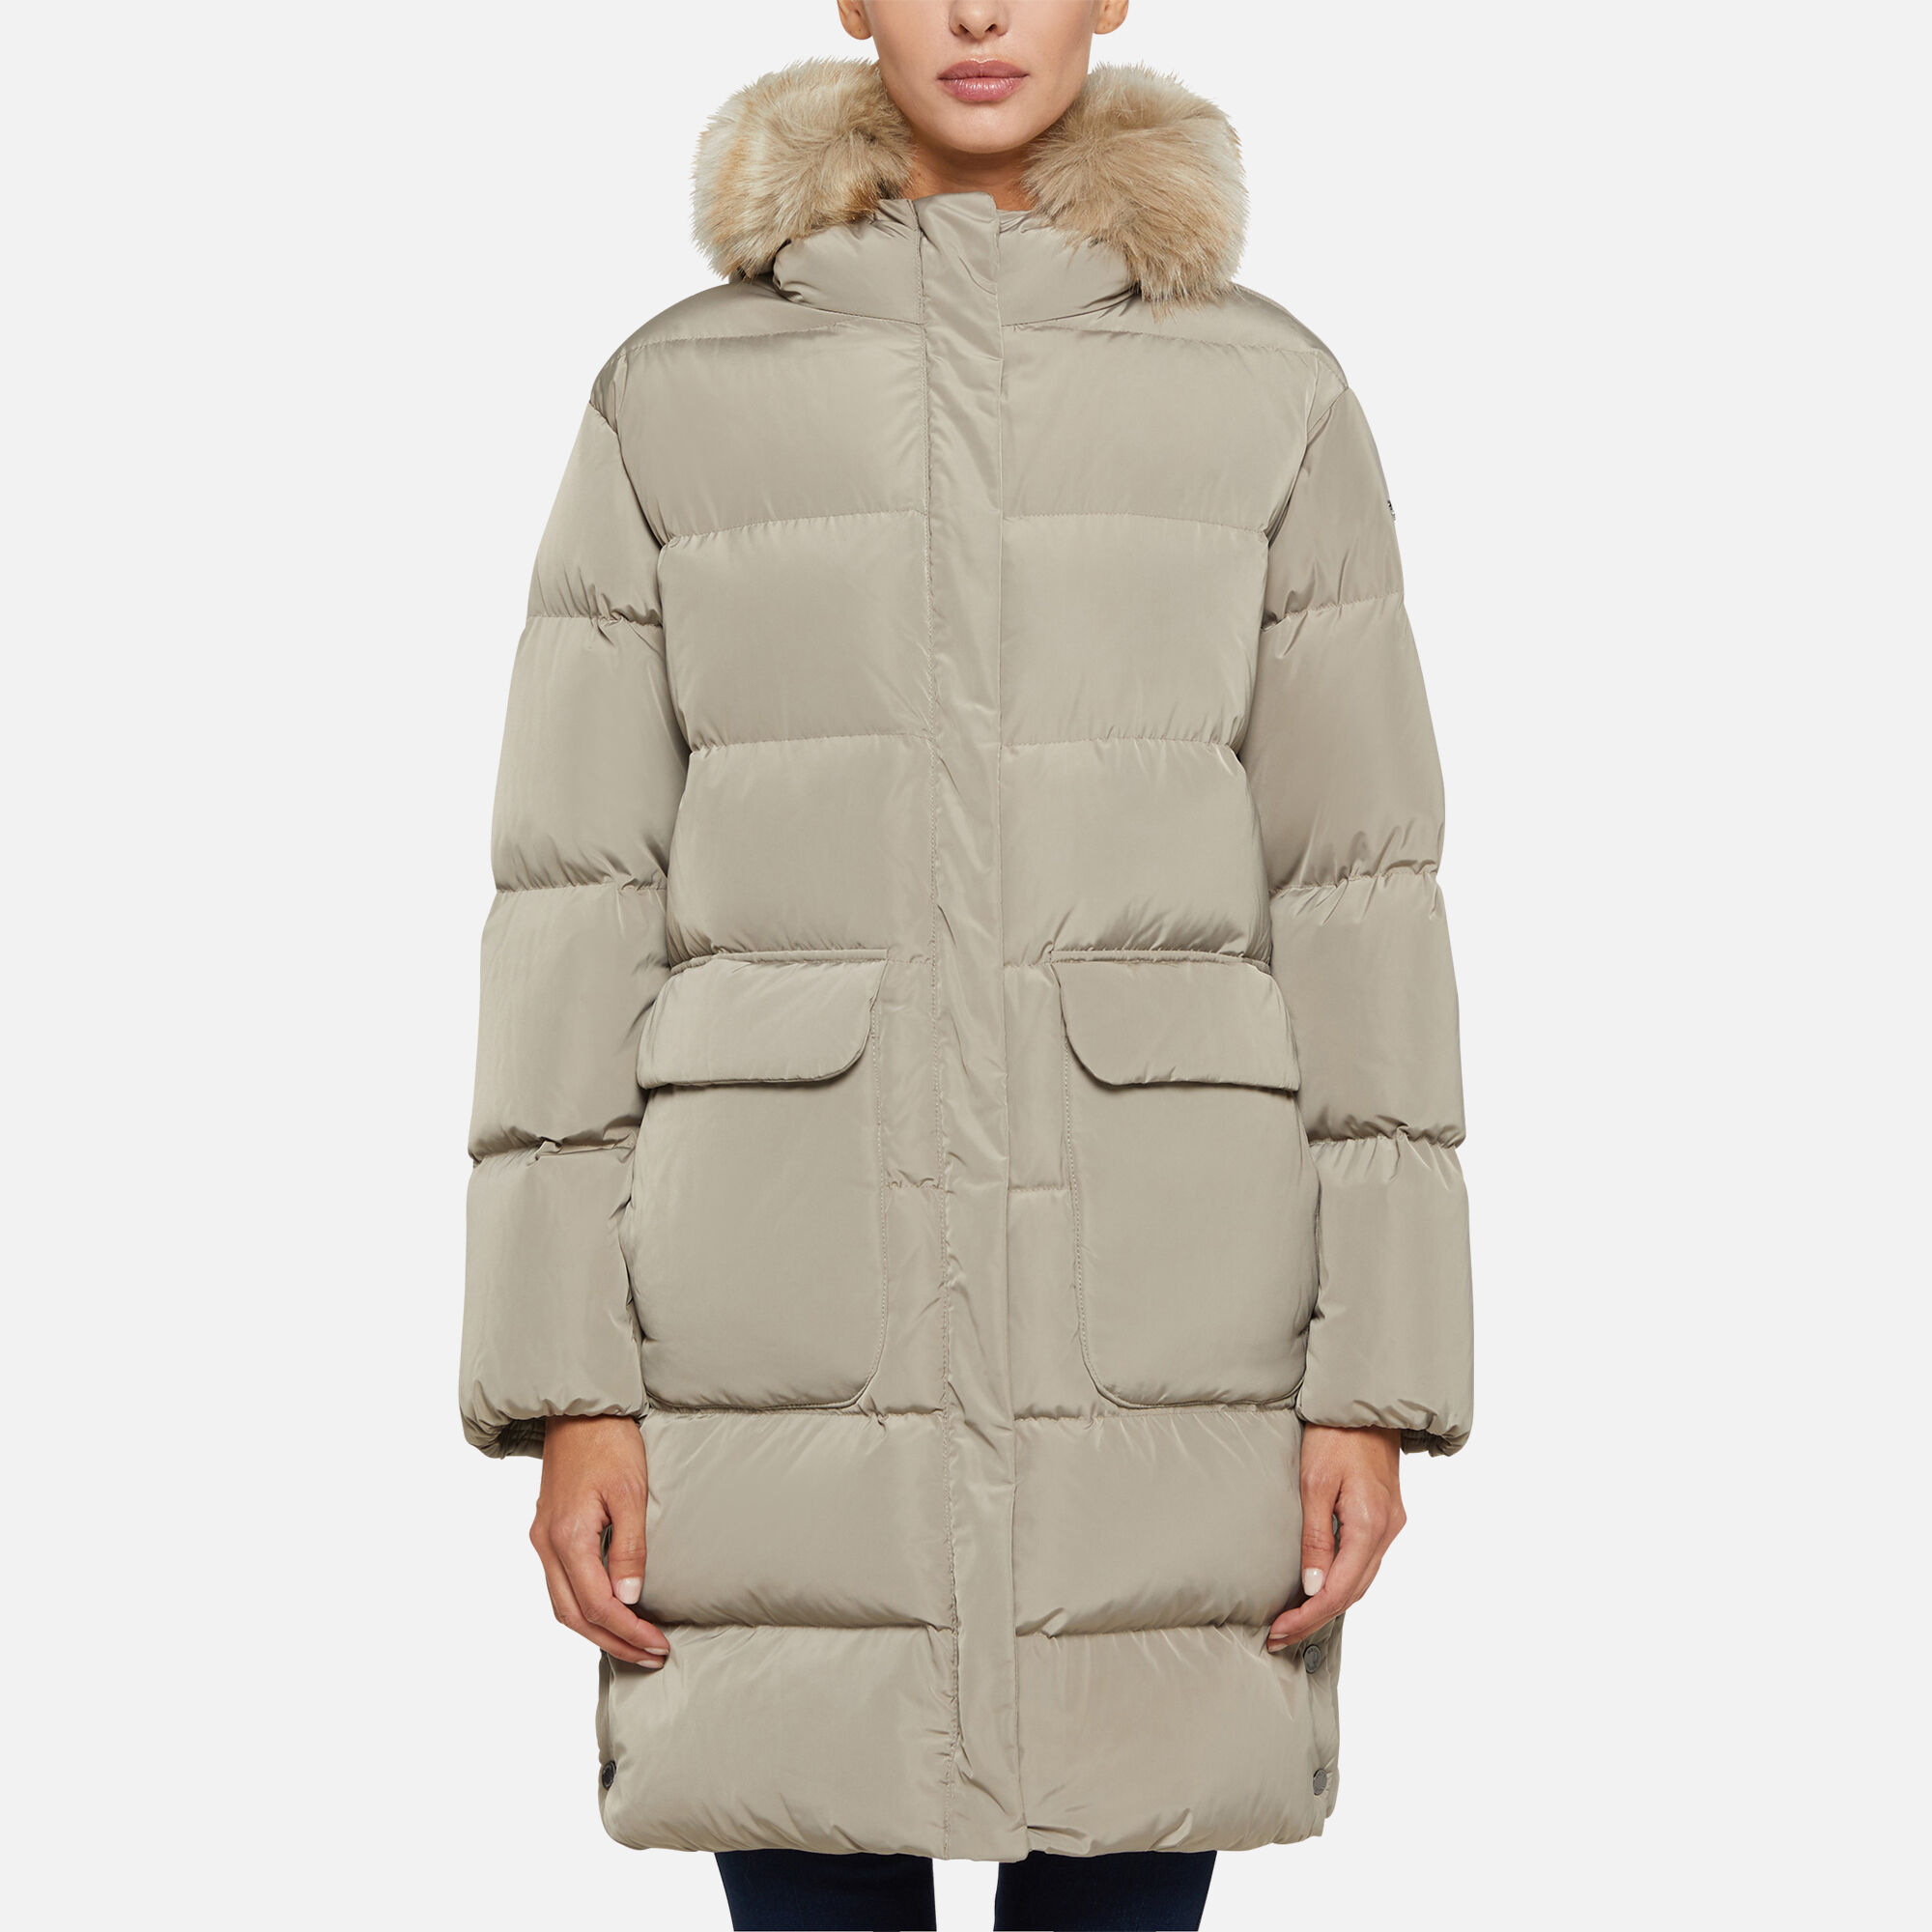 Geox premium down feather coat women